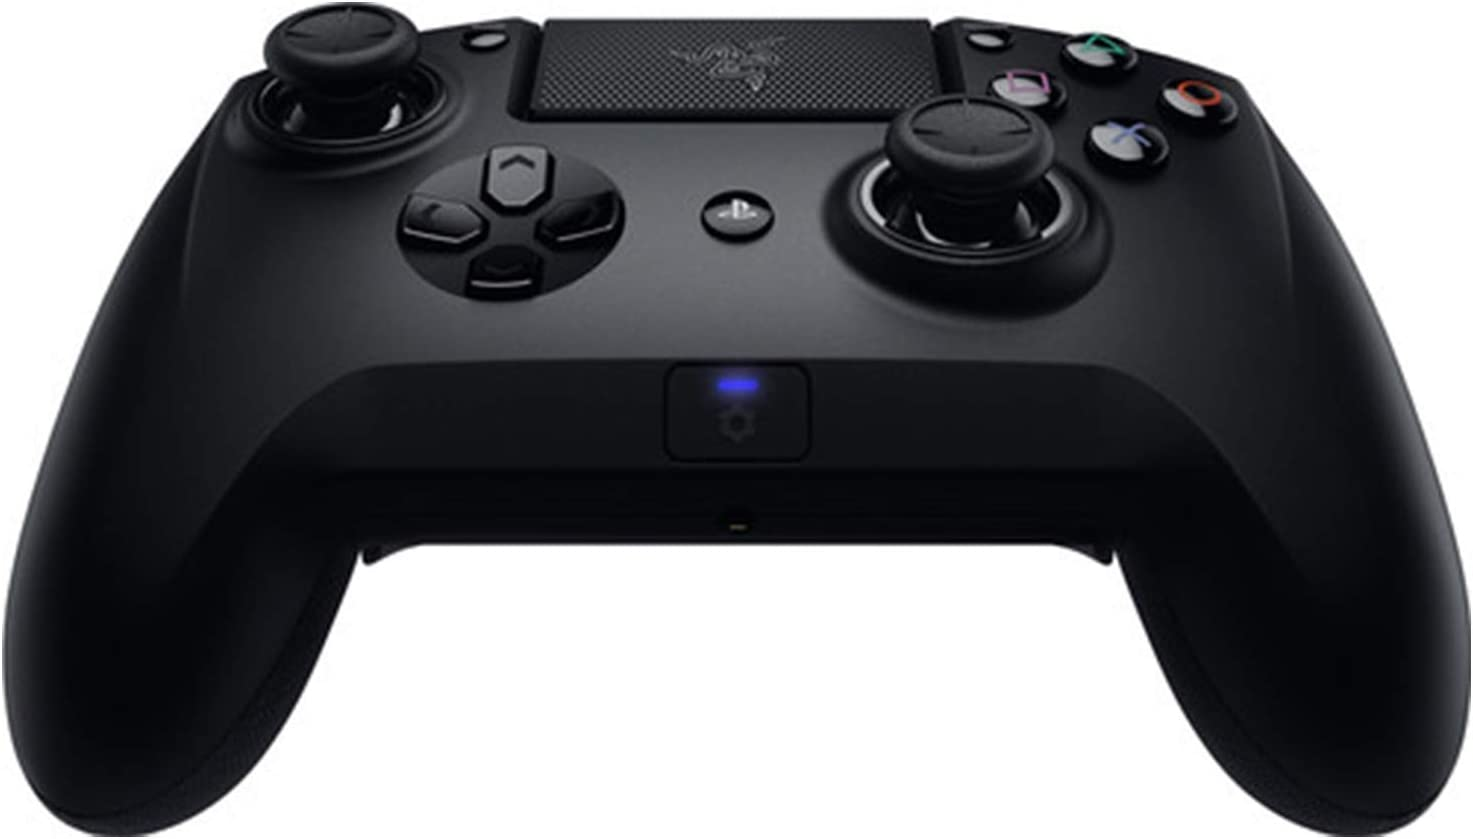 Amazon Com Razer Raiju Tournament Edition Without The1 04 Firmware Gaming Controller Bluetooth Wired Connection Ps4 Pc Usb Controller With Four Programmable Buttons Ergonomics Optimized For Esports Computers Accessories With mode switch, you can easily switch between three connectivity modes: razer raiju tournament edition without the1 04 firmware gaming controller bluetooth wired connection ps4 pc usb controller with four programmable